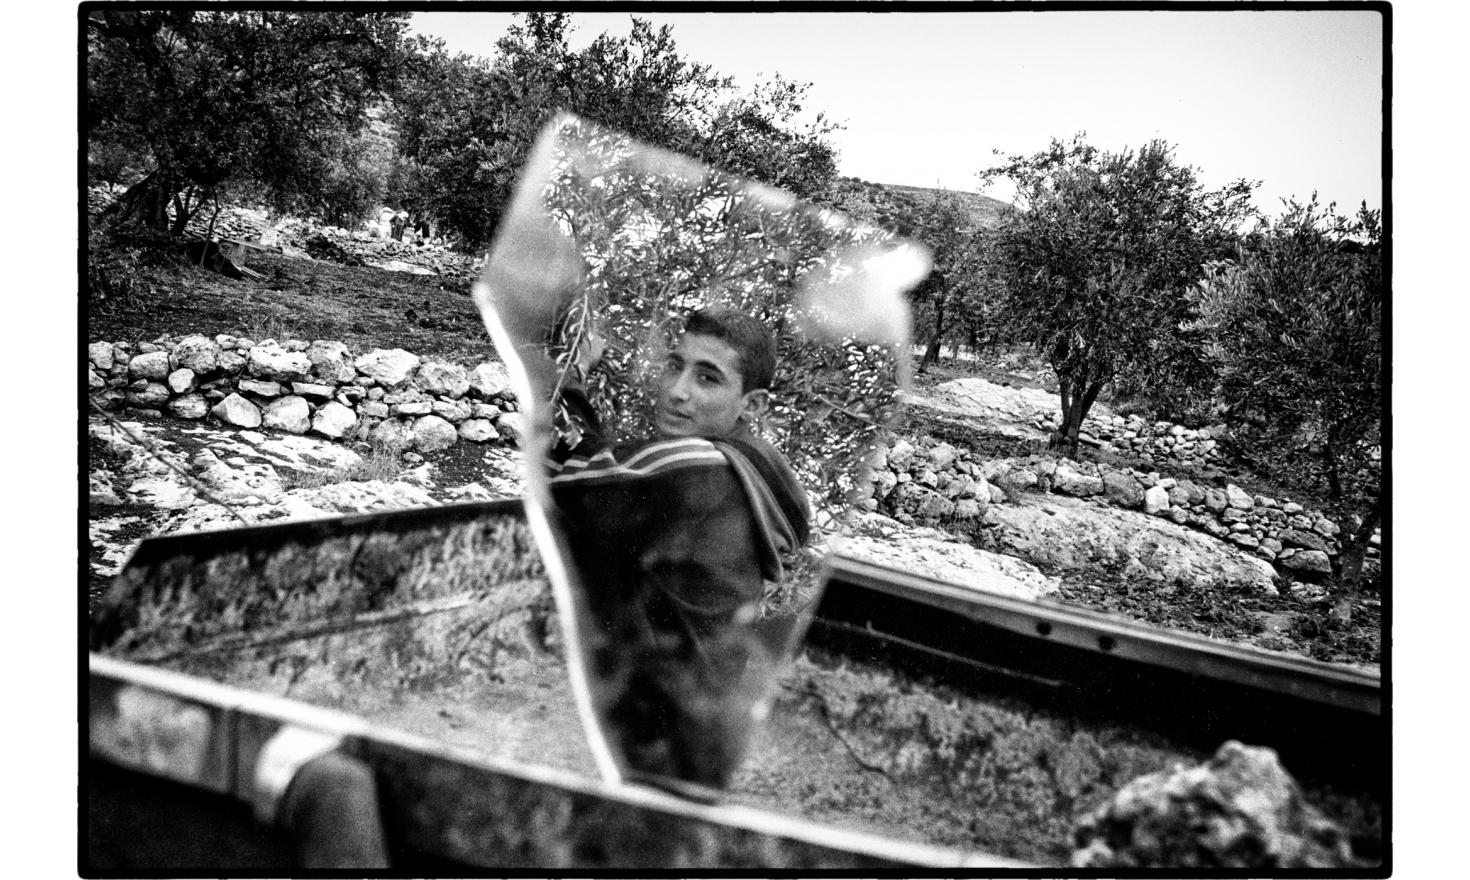 Olive harvest. salem, West Bank. November 2005.